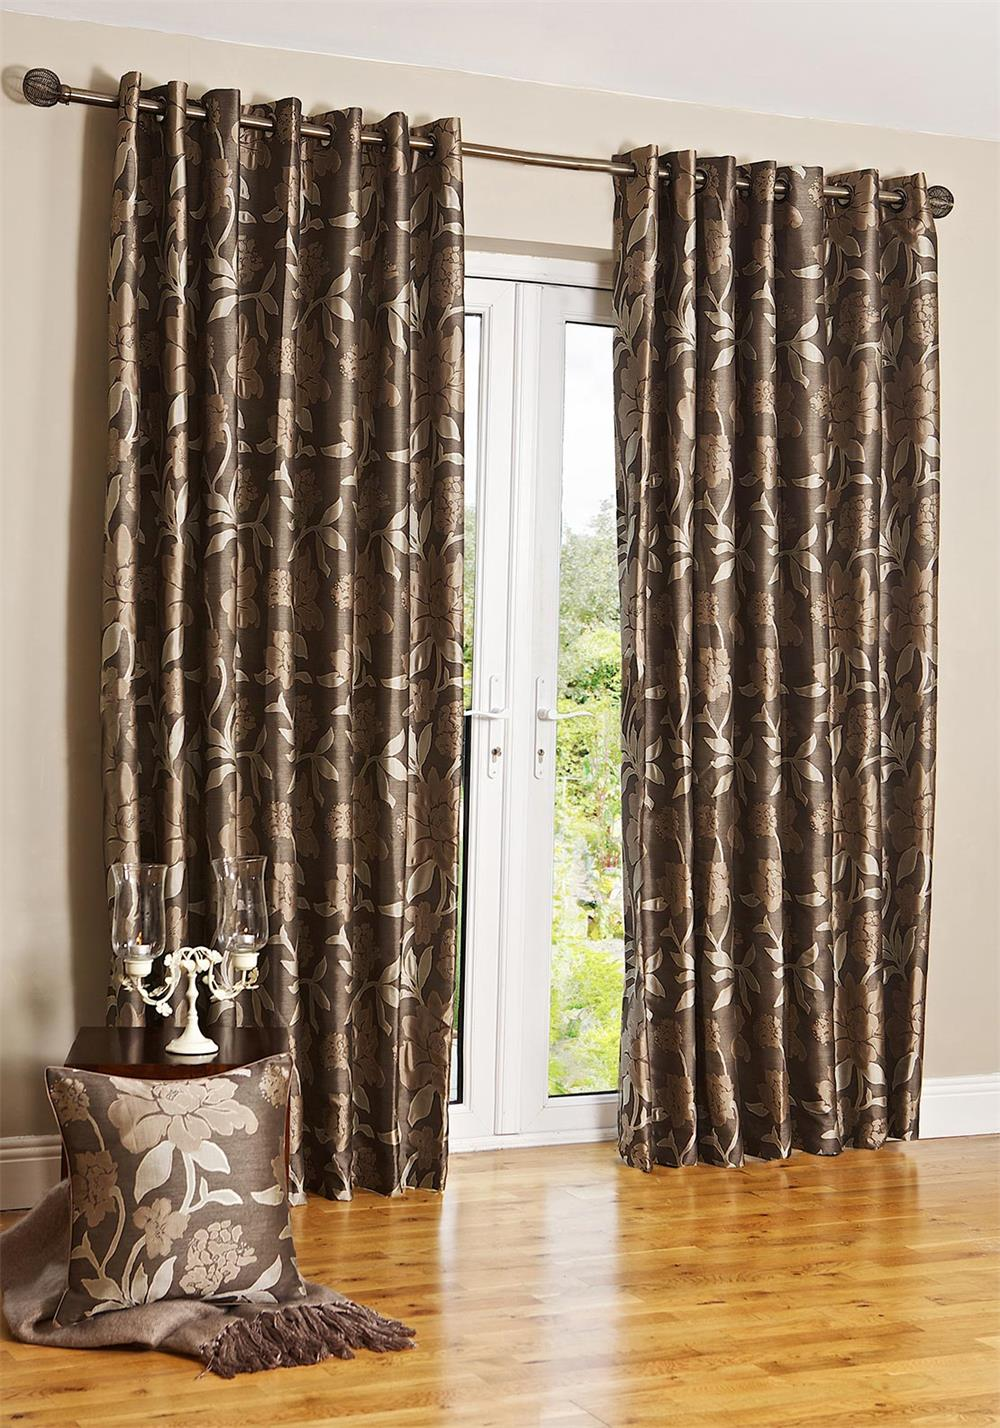 Scatterbox Wisteria Eyelet Fully Lined Ready-Made Curtains, Latte